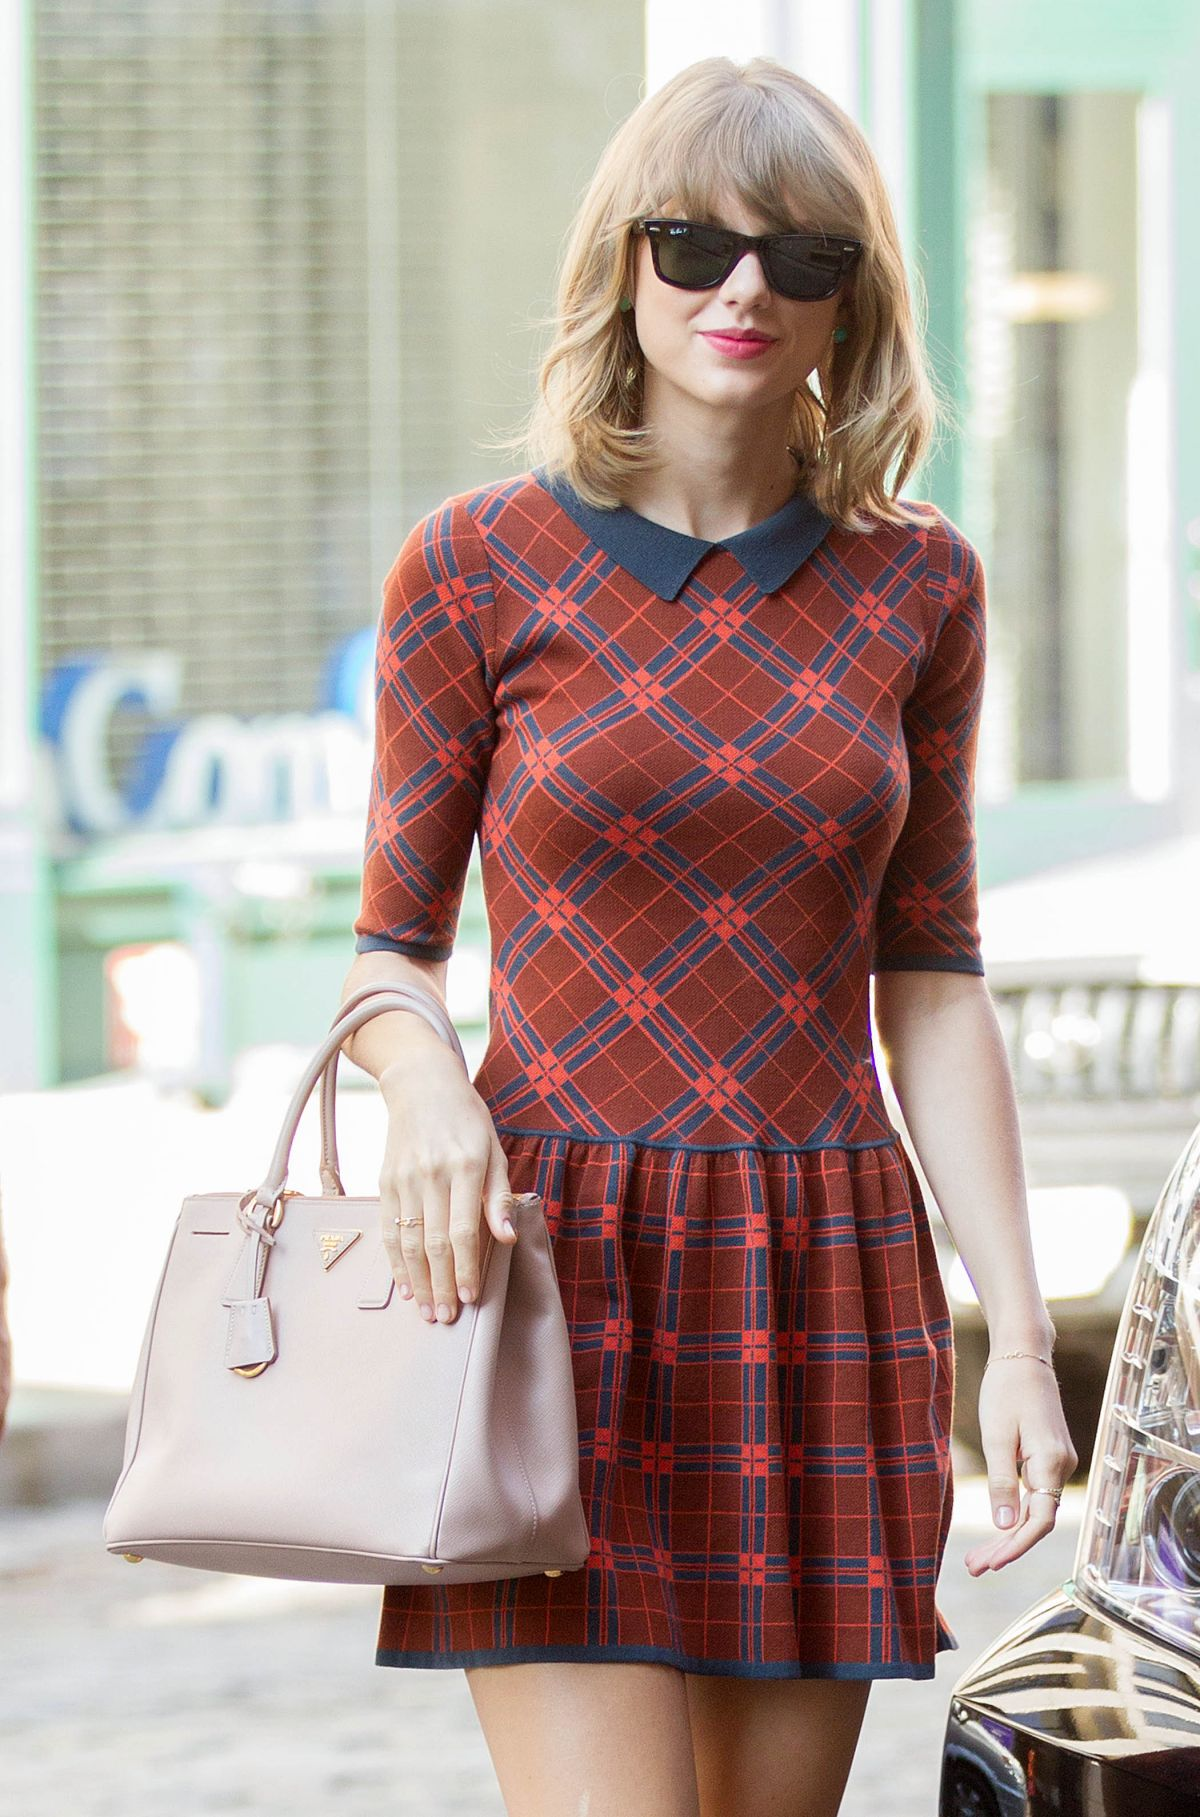 TAYLOR SWIFT Out in New York 1408